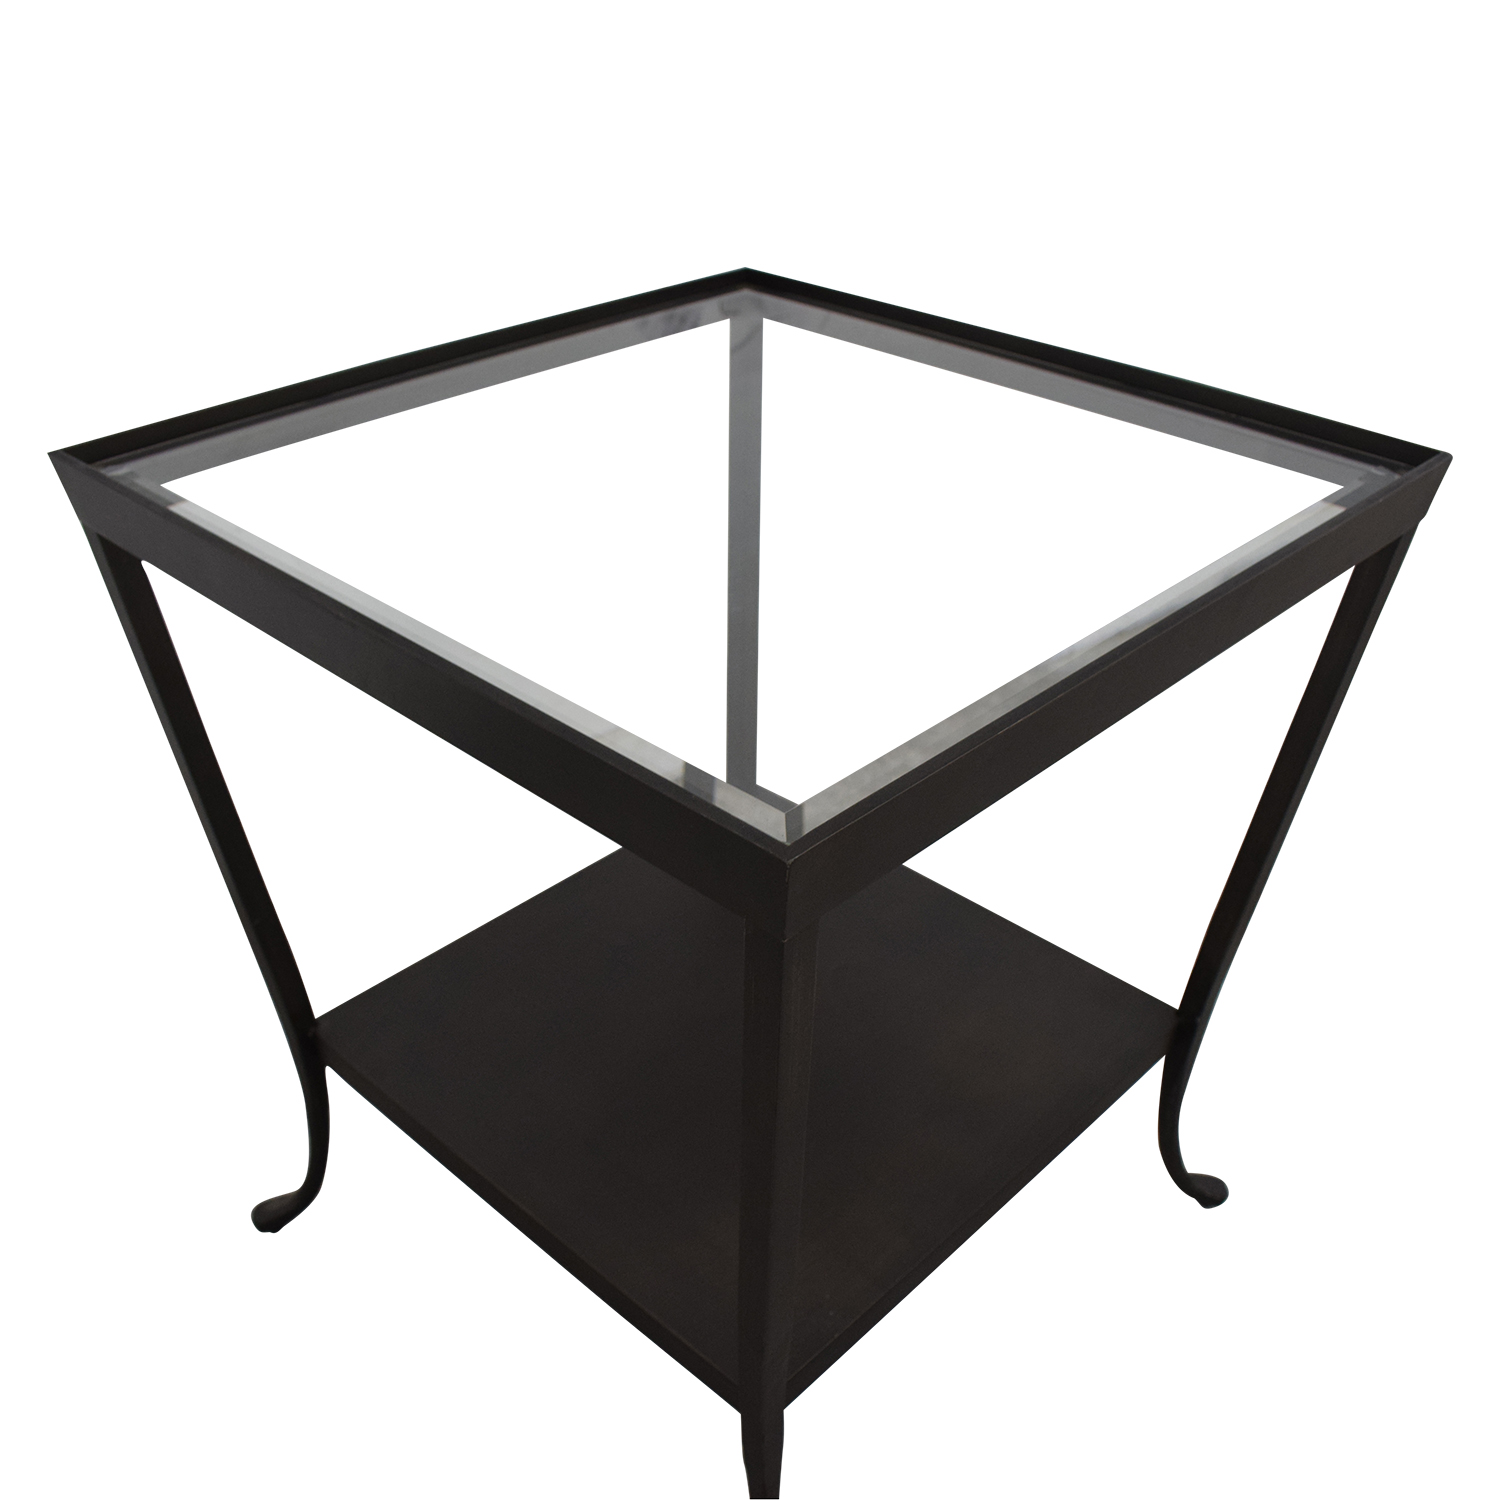 Crate & Barrel Crate & Barrel Square Glass & Metal Accent End Table for sale